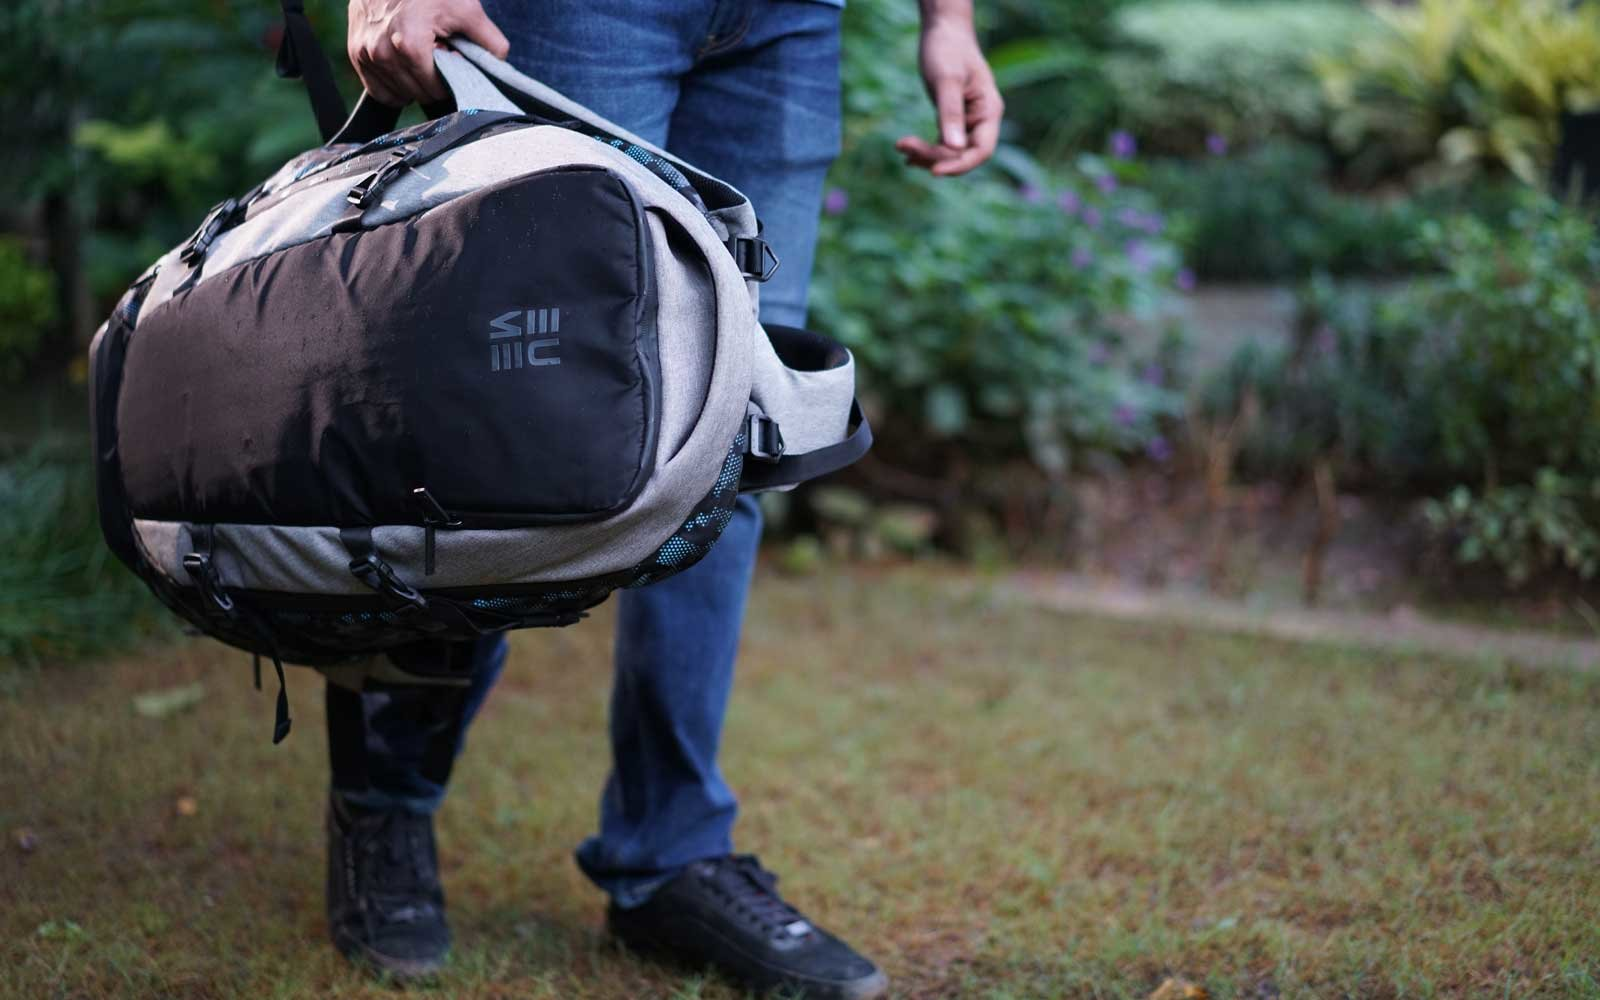 Eume is the world's first patented backpack with a built-in massager.